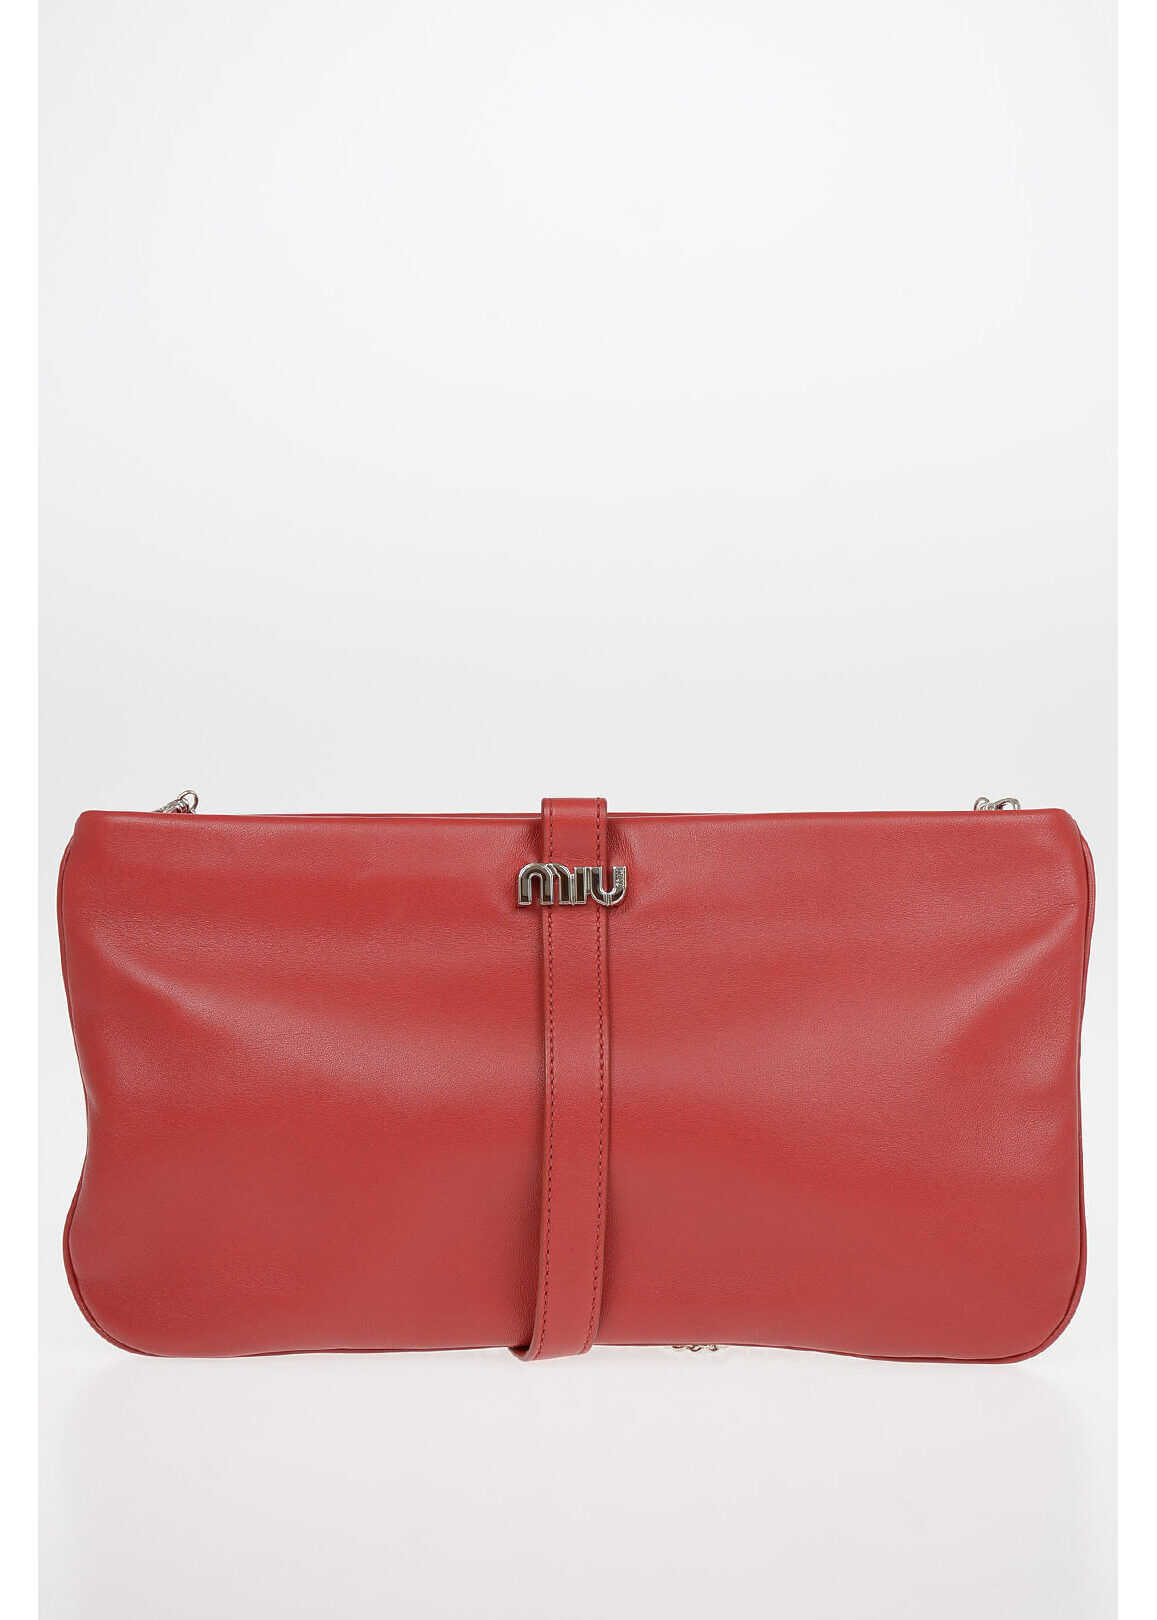 Miu Miu Soft Leather Pouch with Removable Shoulder ChaIn PINK imagine b-mall.ro